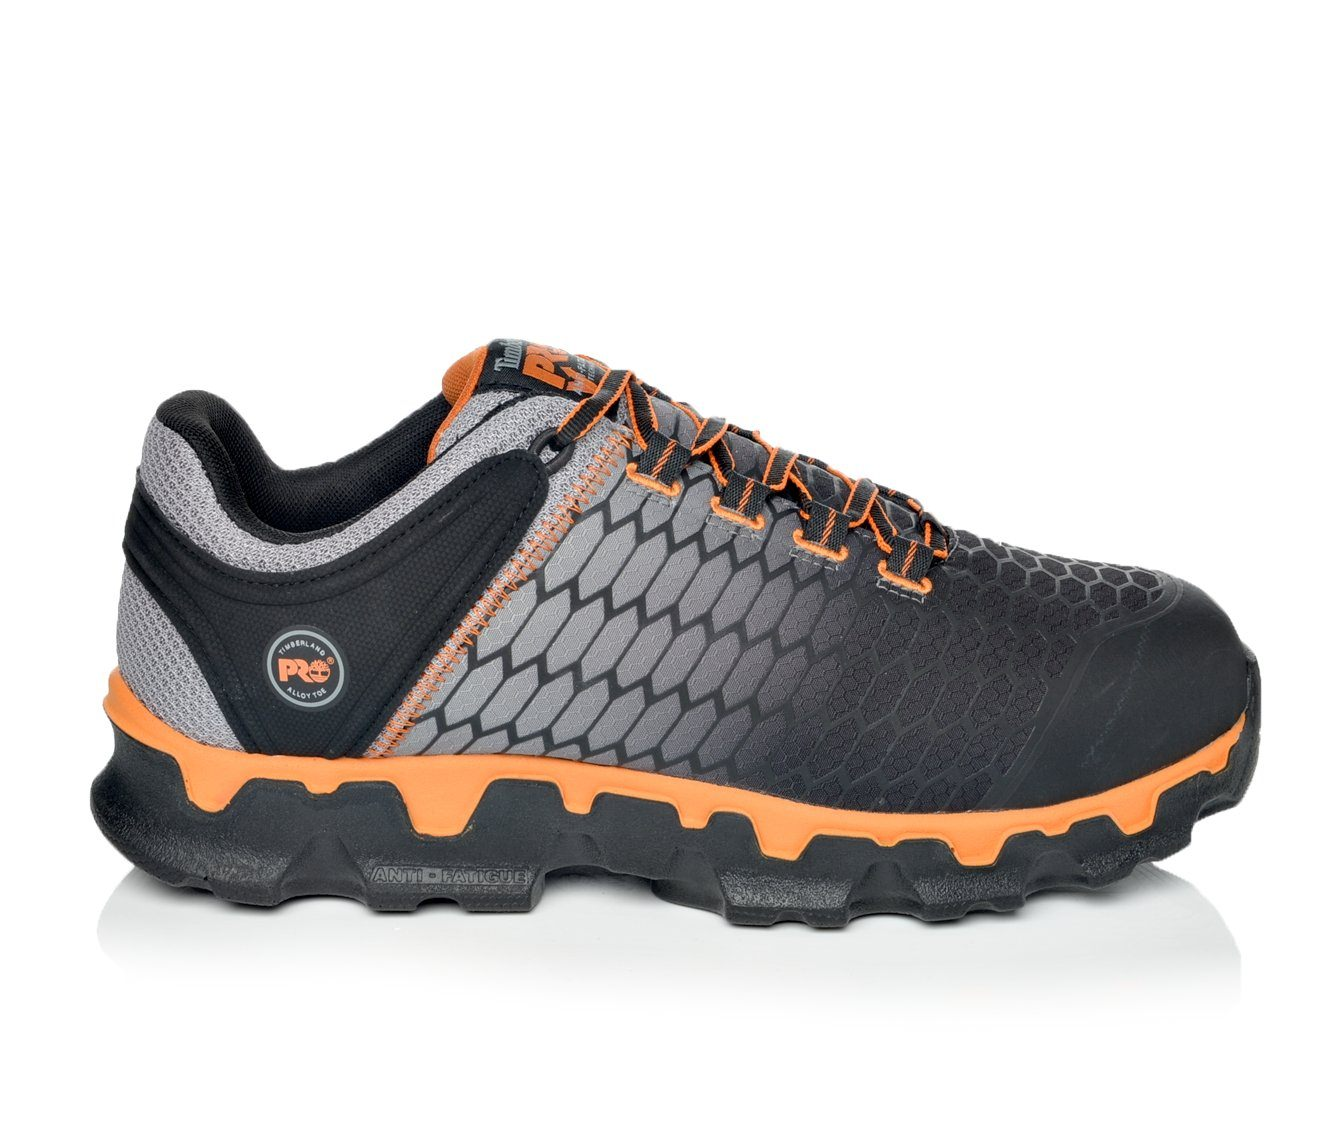 Timberland Pro Powertrain Sport A1GT9 Men's Boots (Gray Faux Leather)